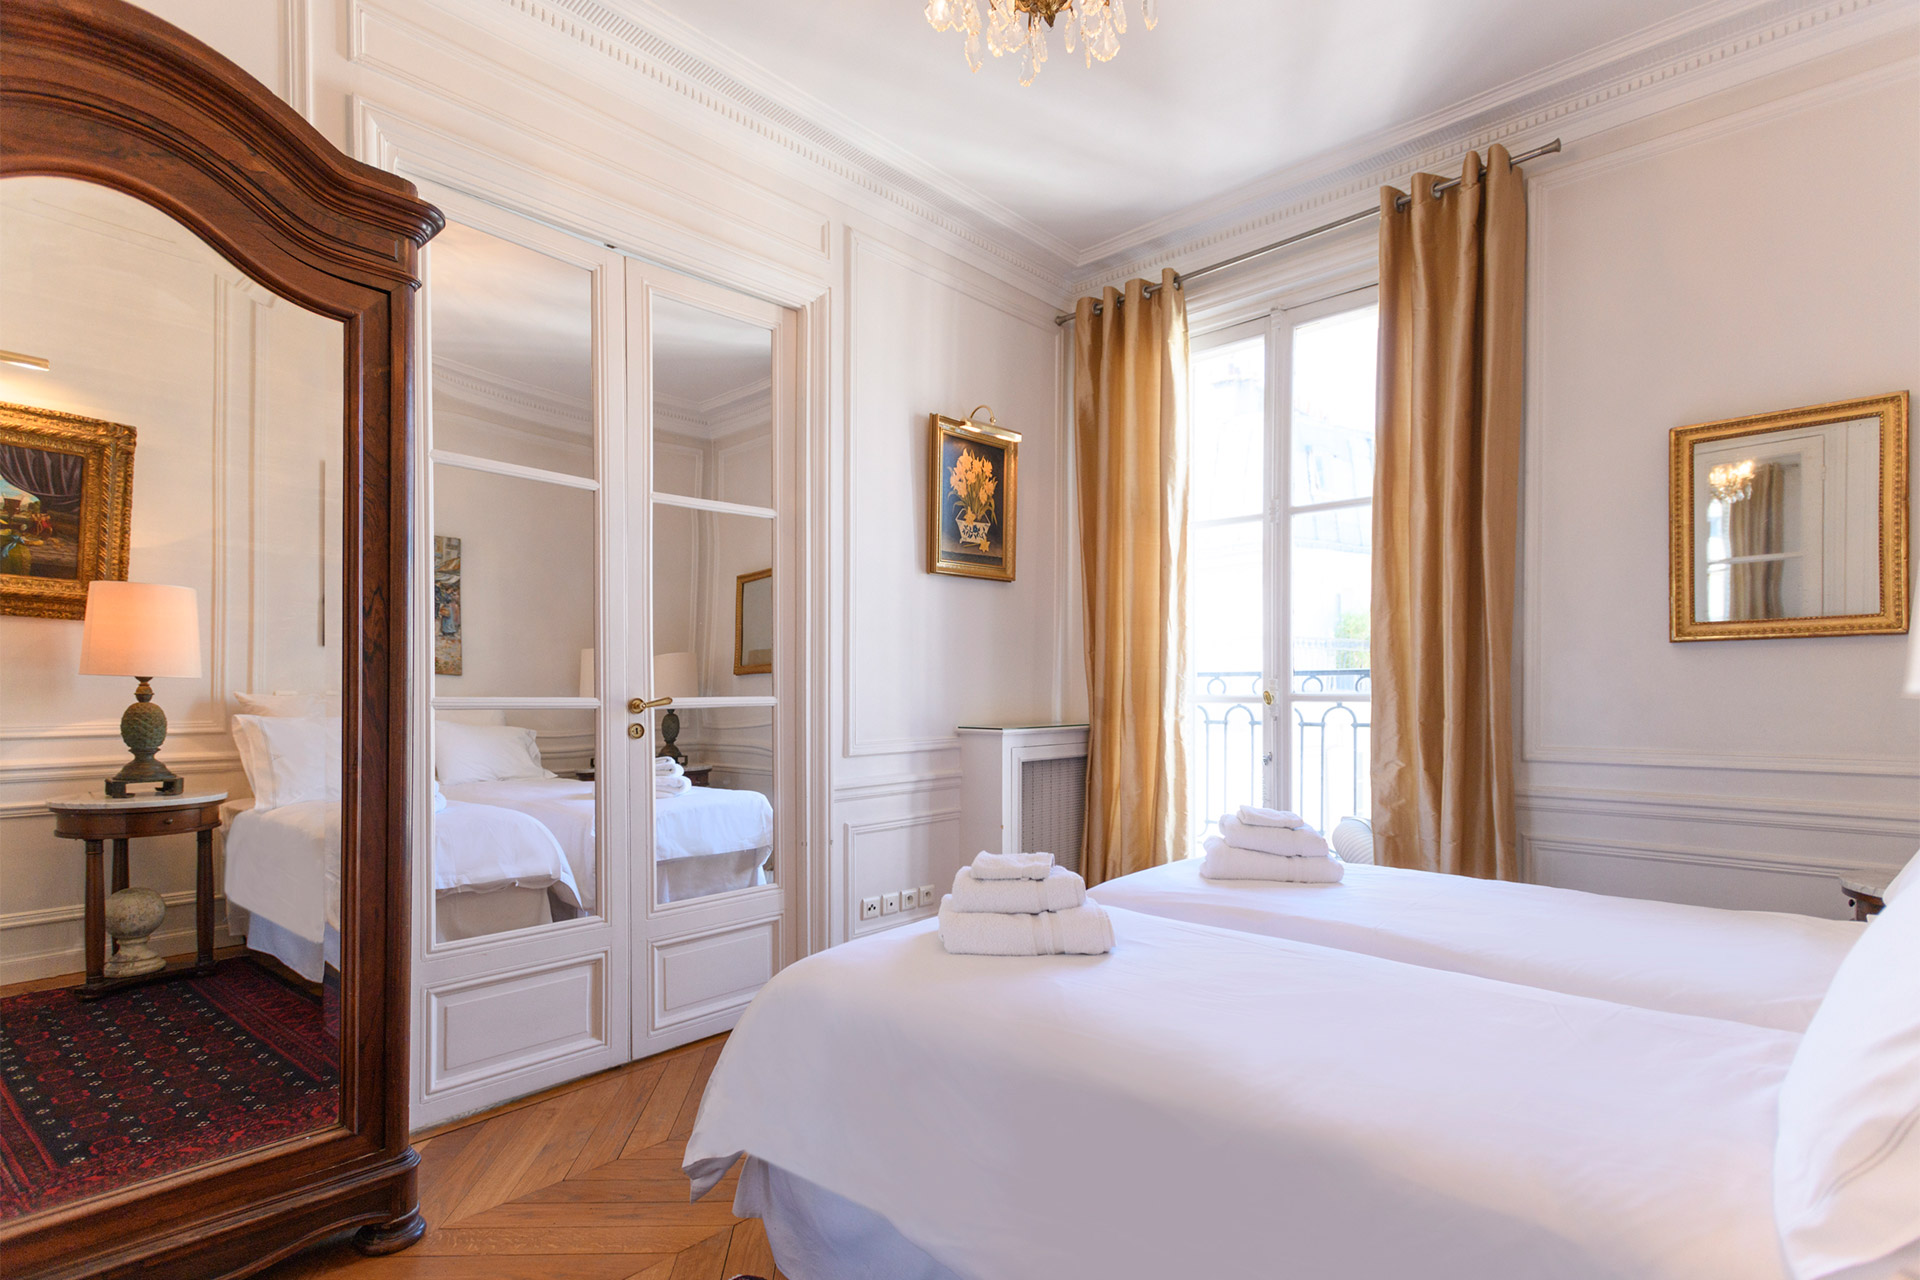 Adjoining bedroom in the Chateauneuf vacation rental offered by Paris Perfect